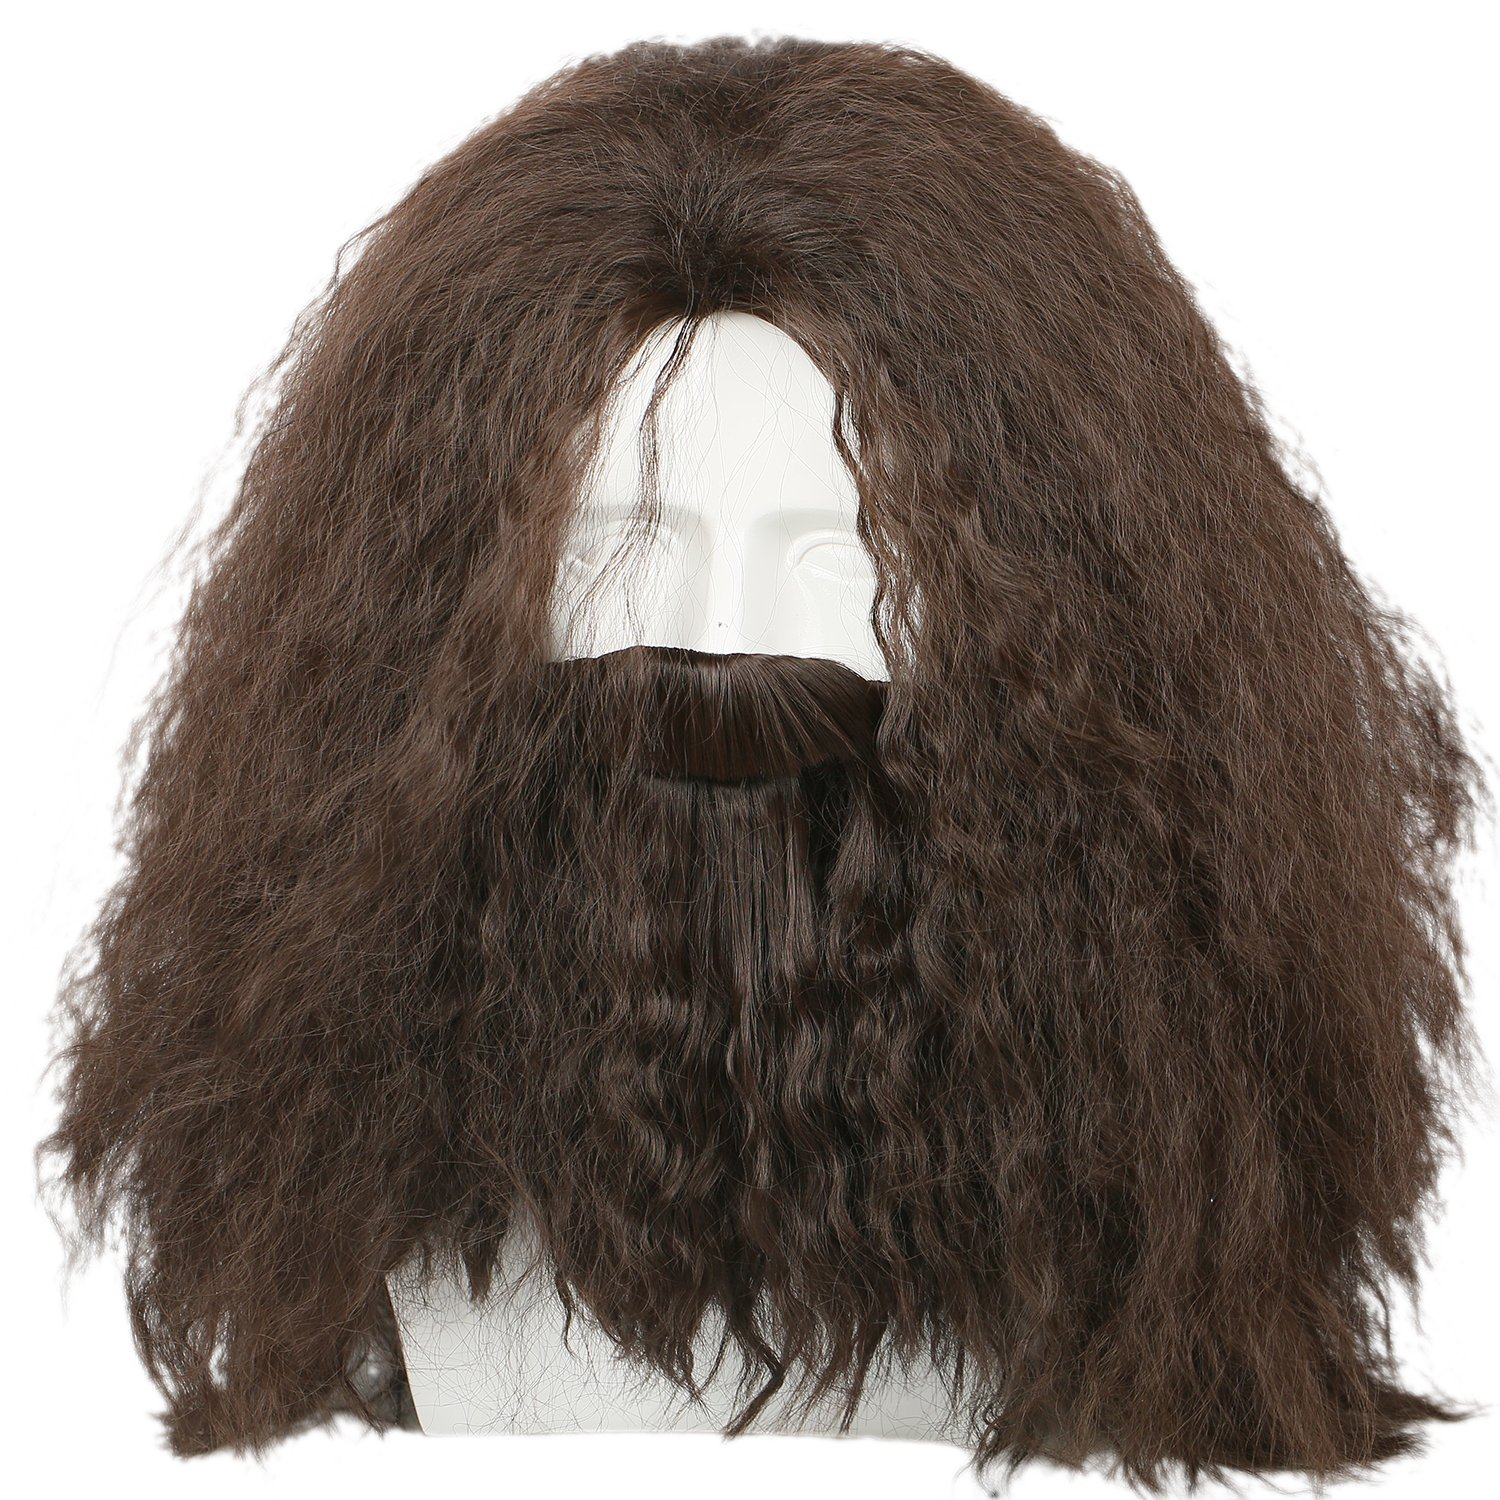 Coslive Hagrid Wig Movie Cosplay Brown Long National products Beard Curly Hair Cos quality assurance